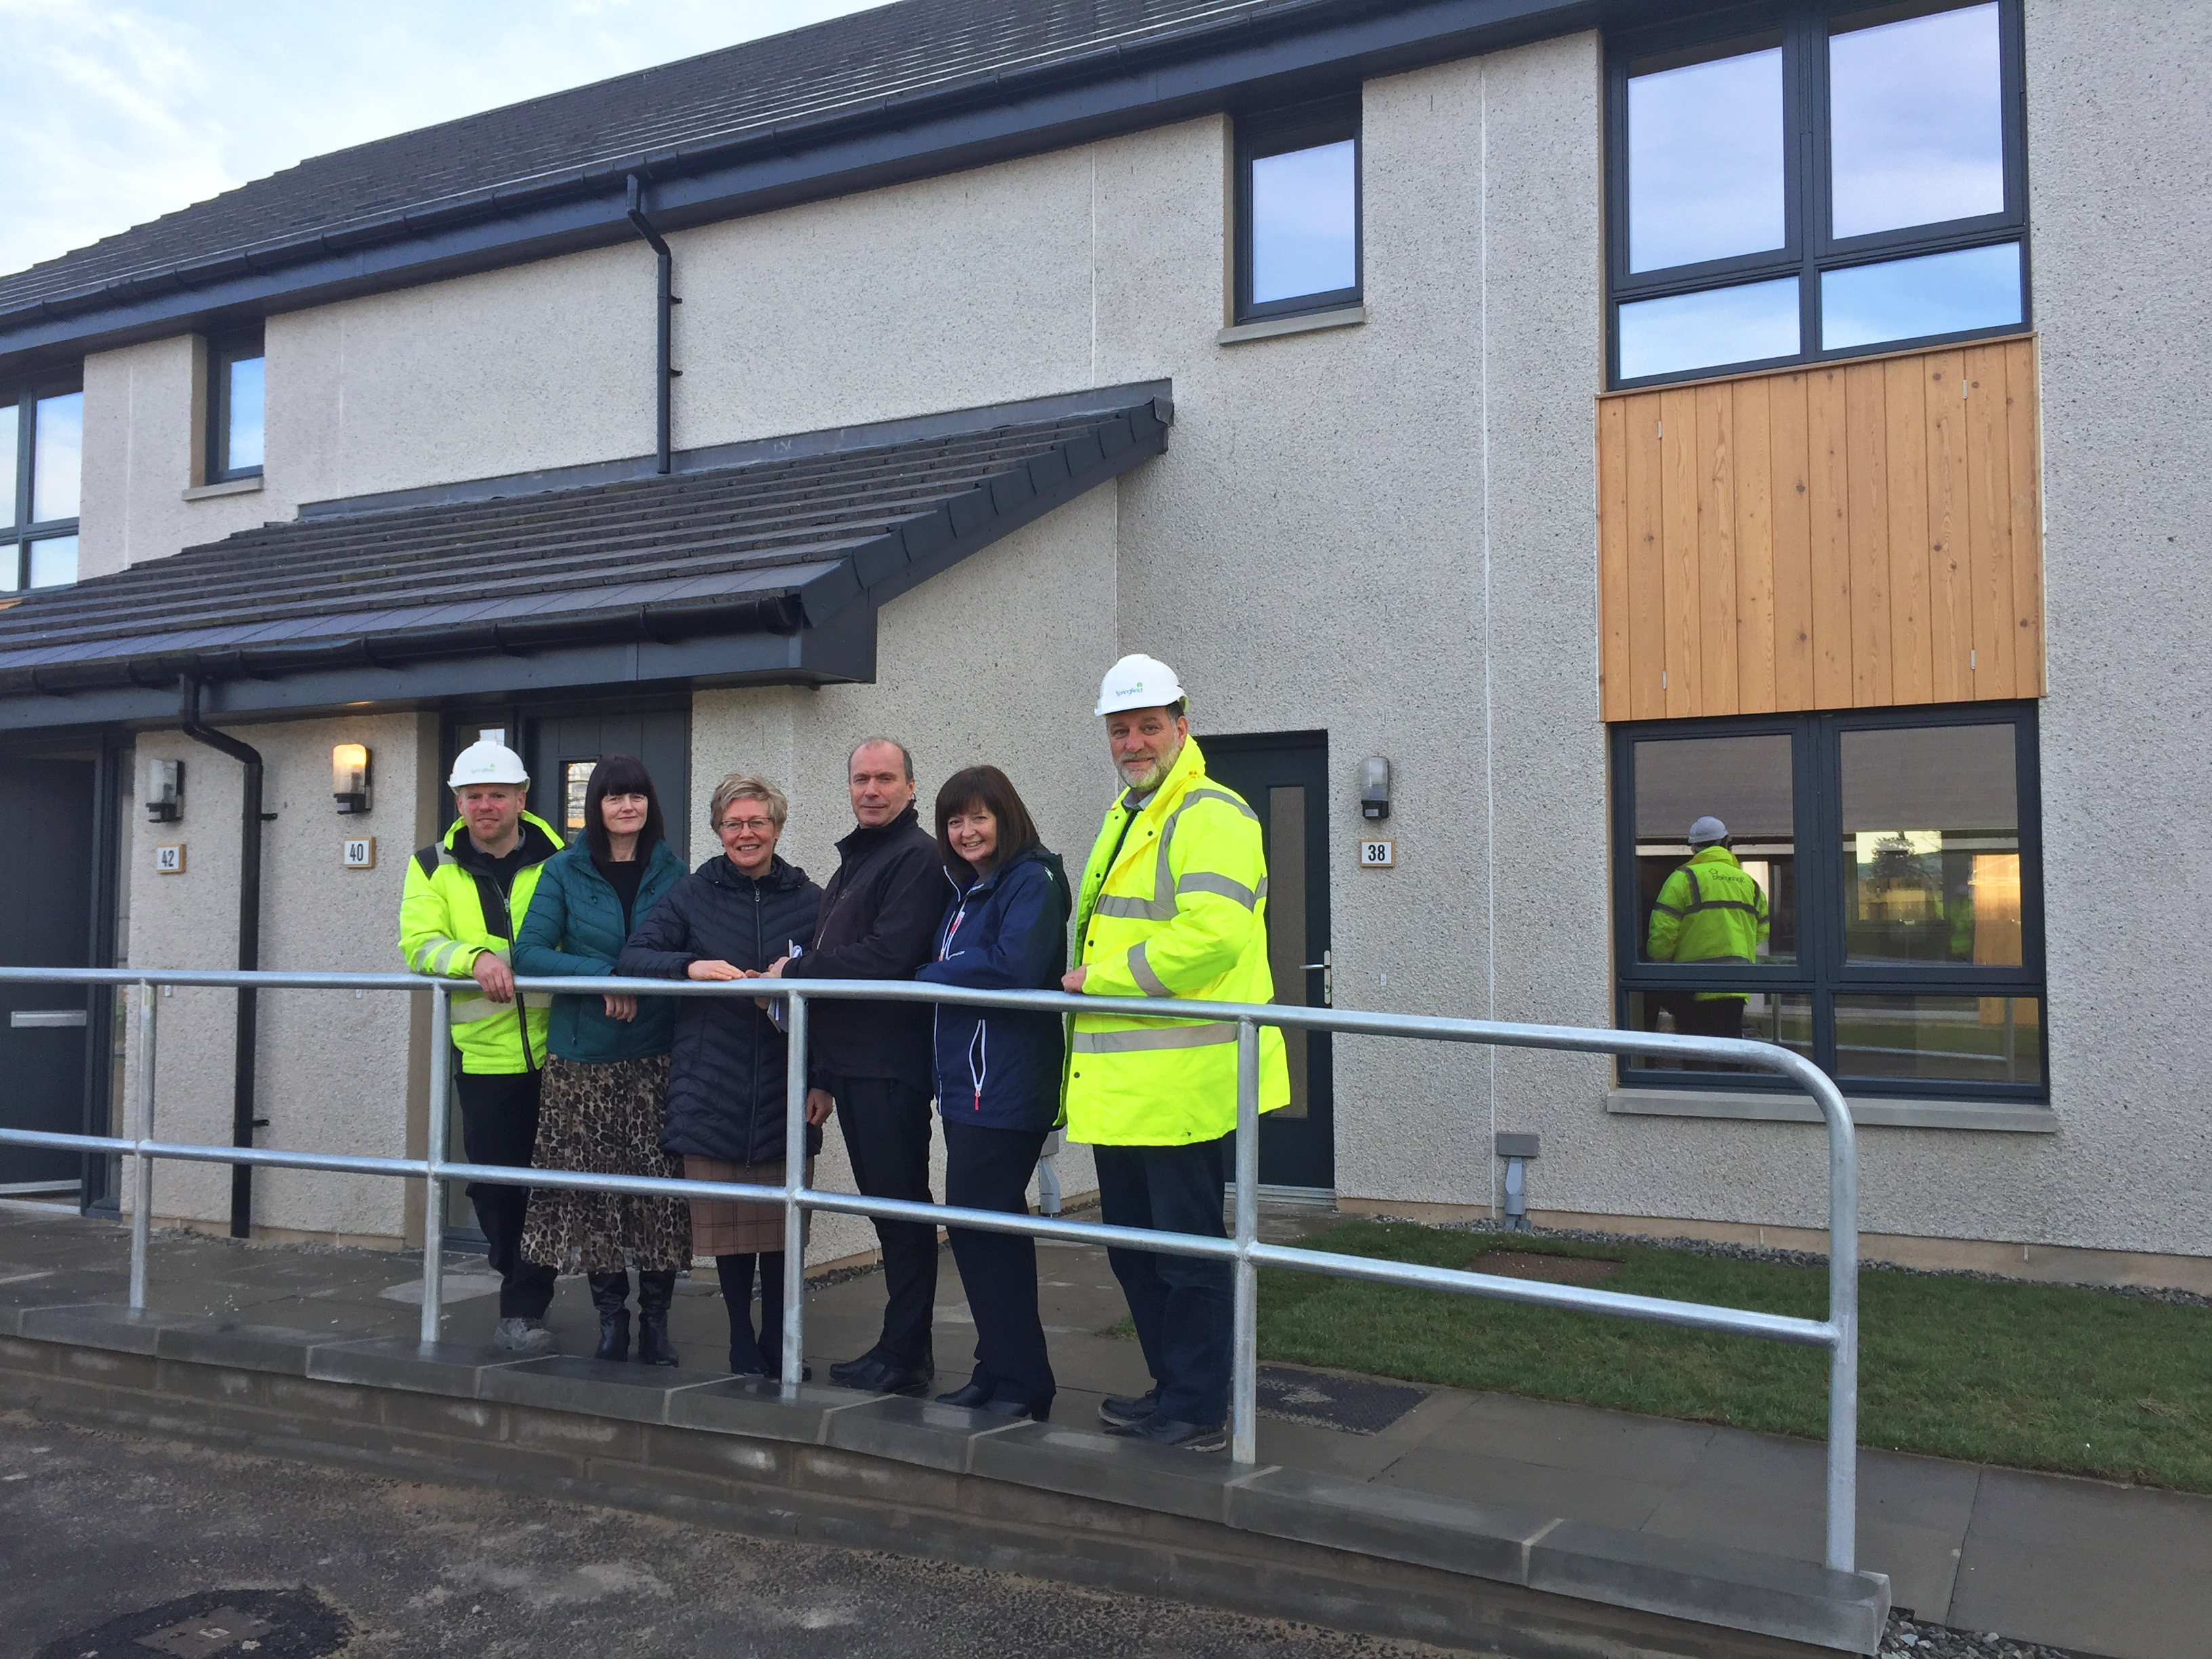 PicturedL Gordon Mortimer, Springfield site manager, Gillian Henly, senior housing officer Moray Council, Angela Fraser, housing information systems officer Moray Council, Andy Warman, housing occupational therapist Moray Council, Fiona Geddes, acting housing strategy and development manager Moray Council, Bruce Robertson, Springfield Partnerships Project Manager.